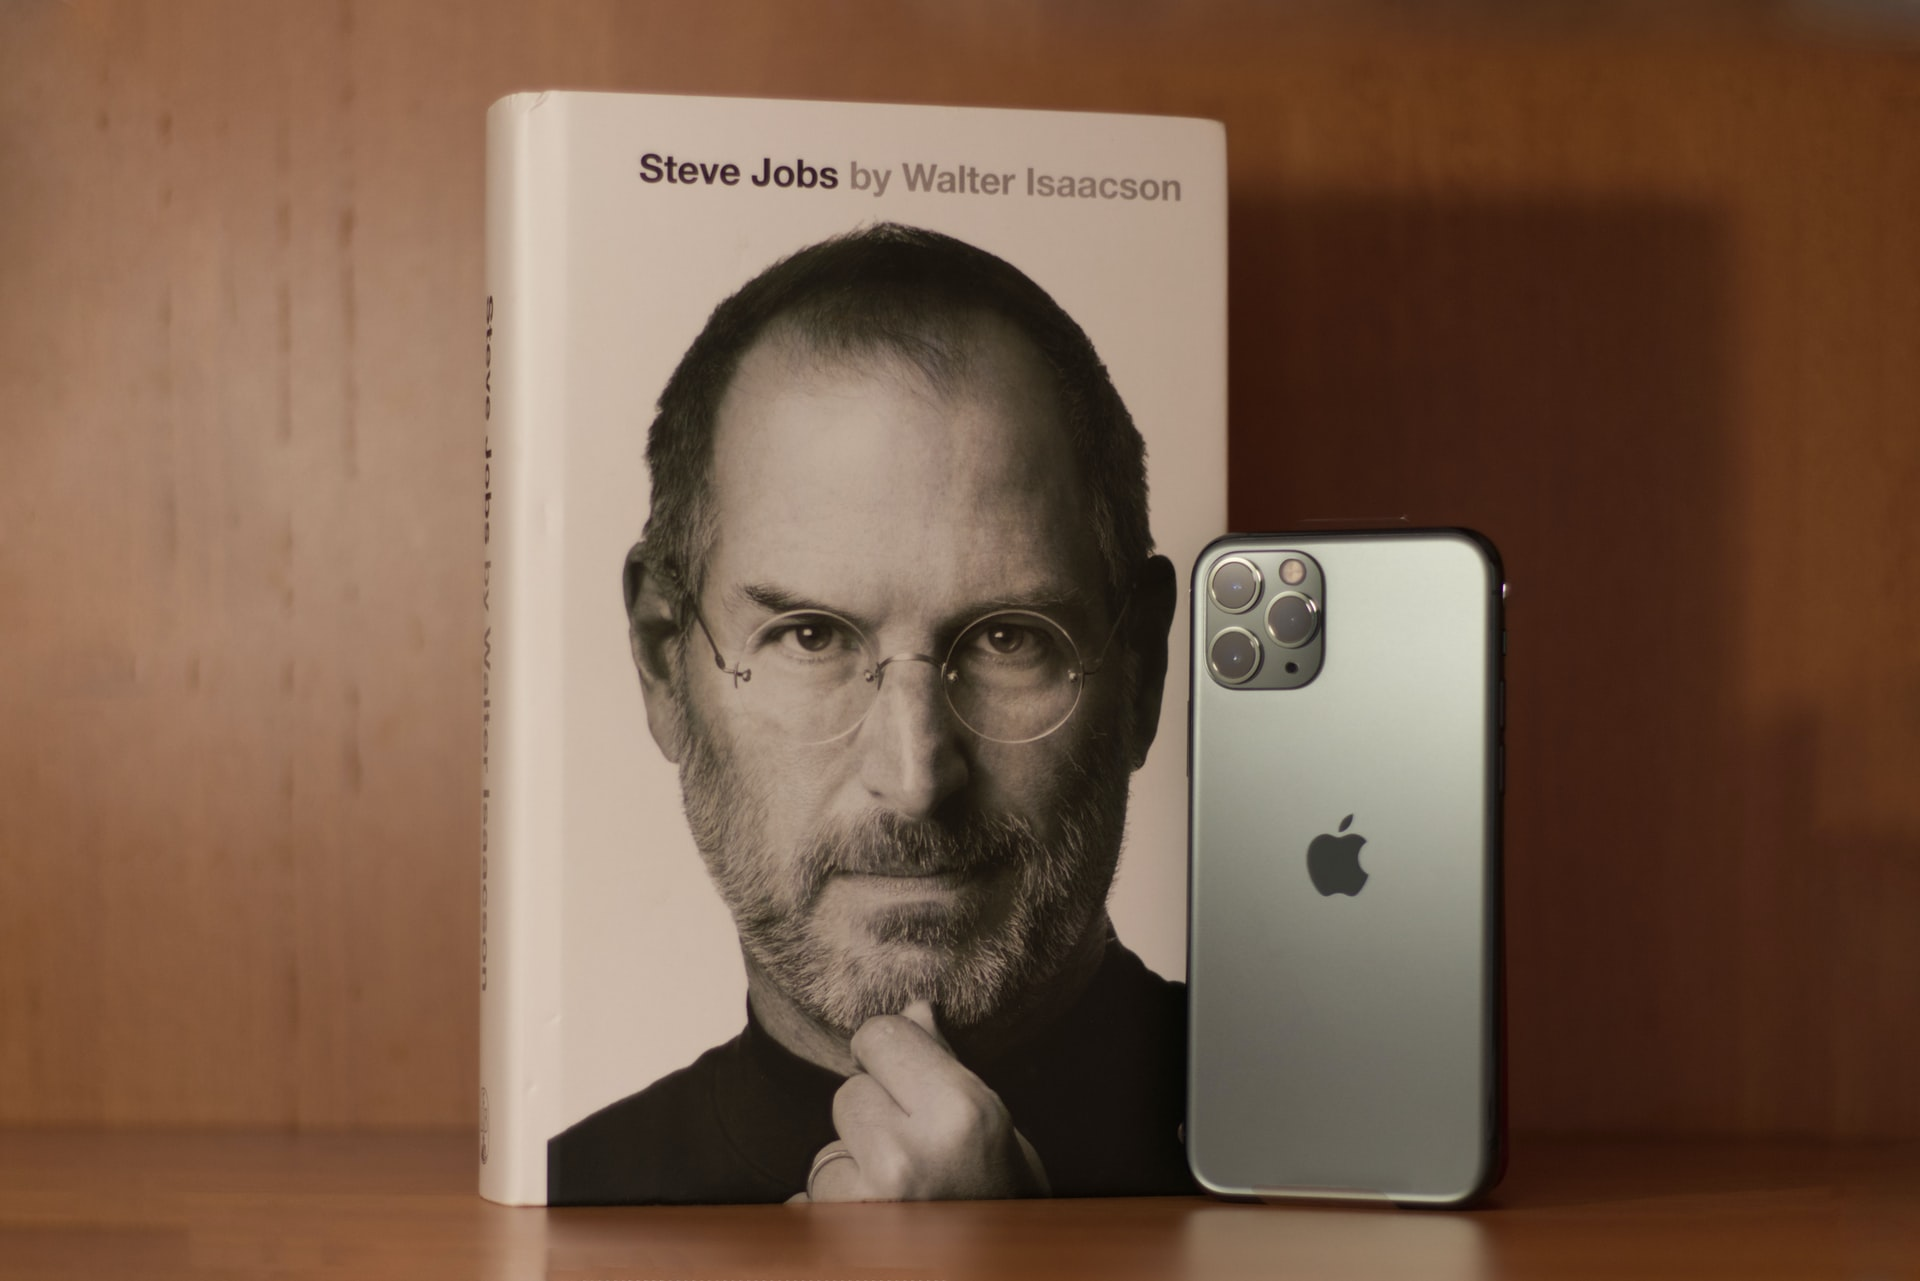 Steve jobs photo in a book cover and iPhone